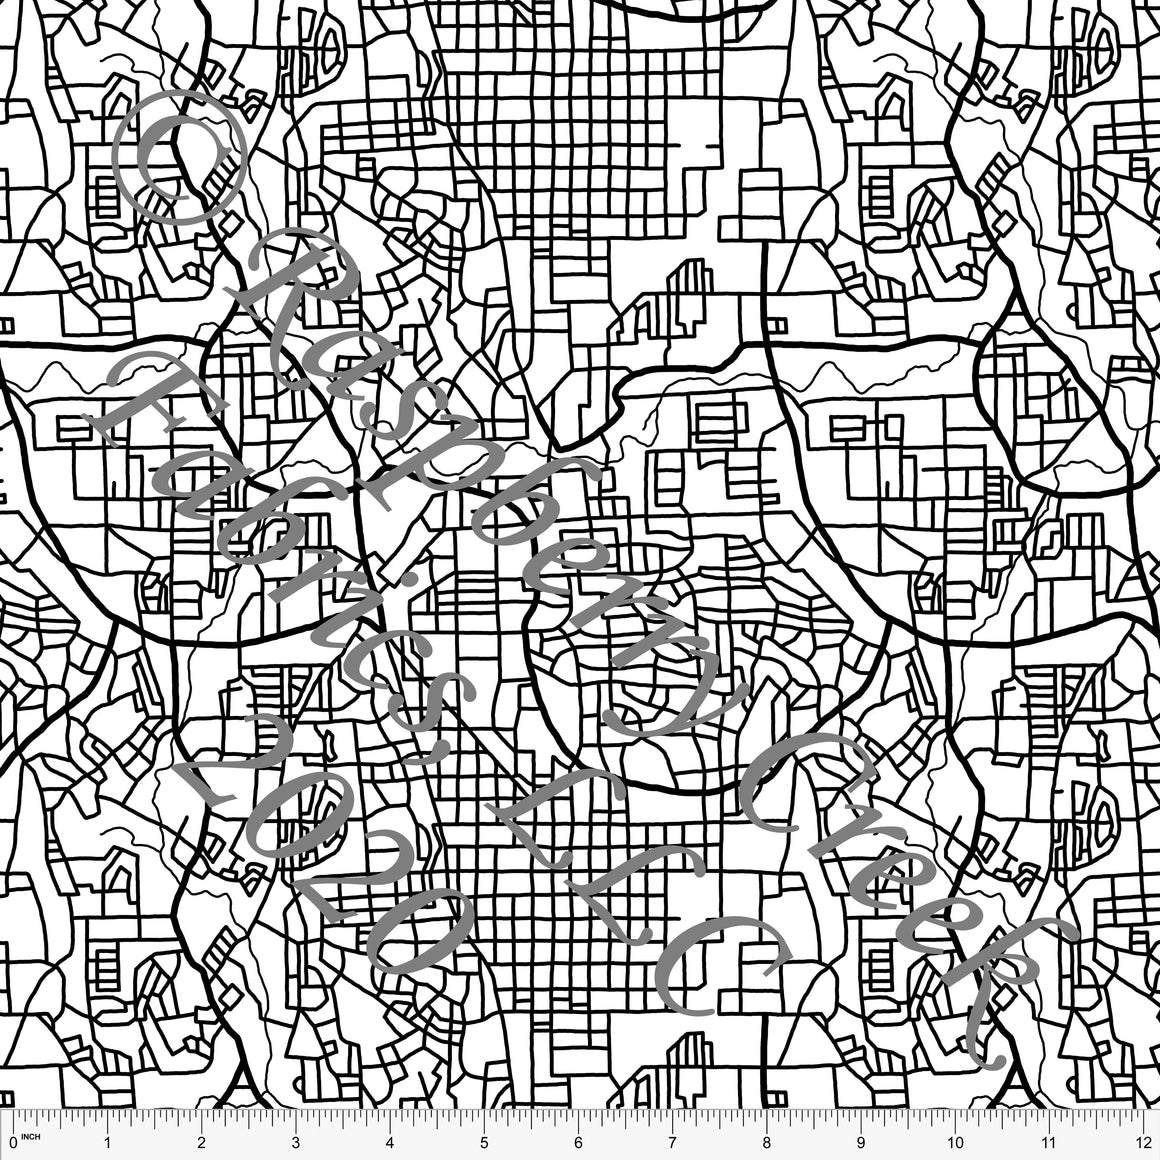 Black and White Minimal Street Map, Minimal 2.0 by Brittney Laidlaw for Club Fabrics - Raspberry Creek Fabrics